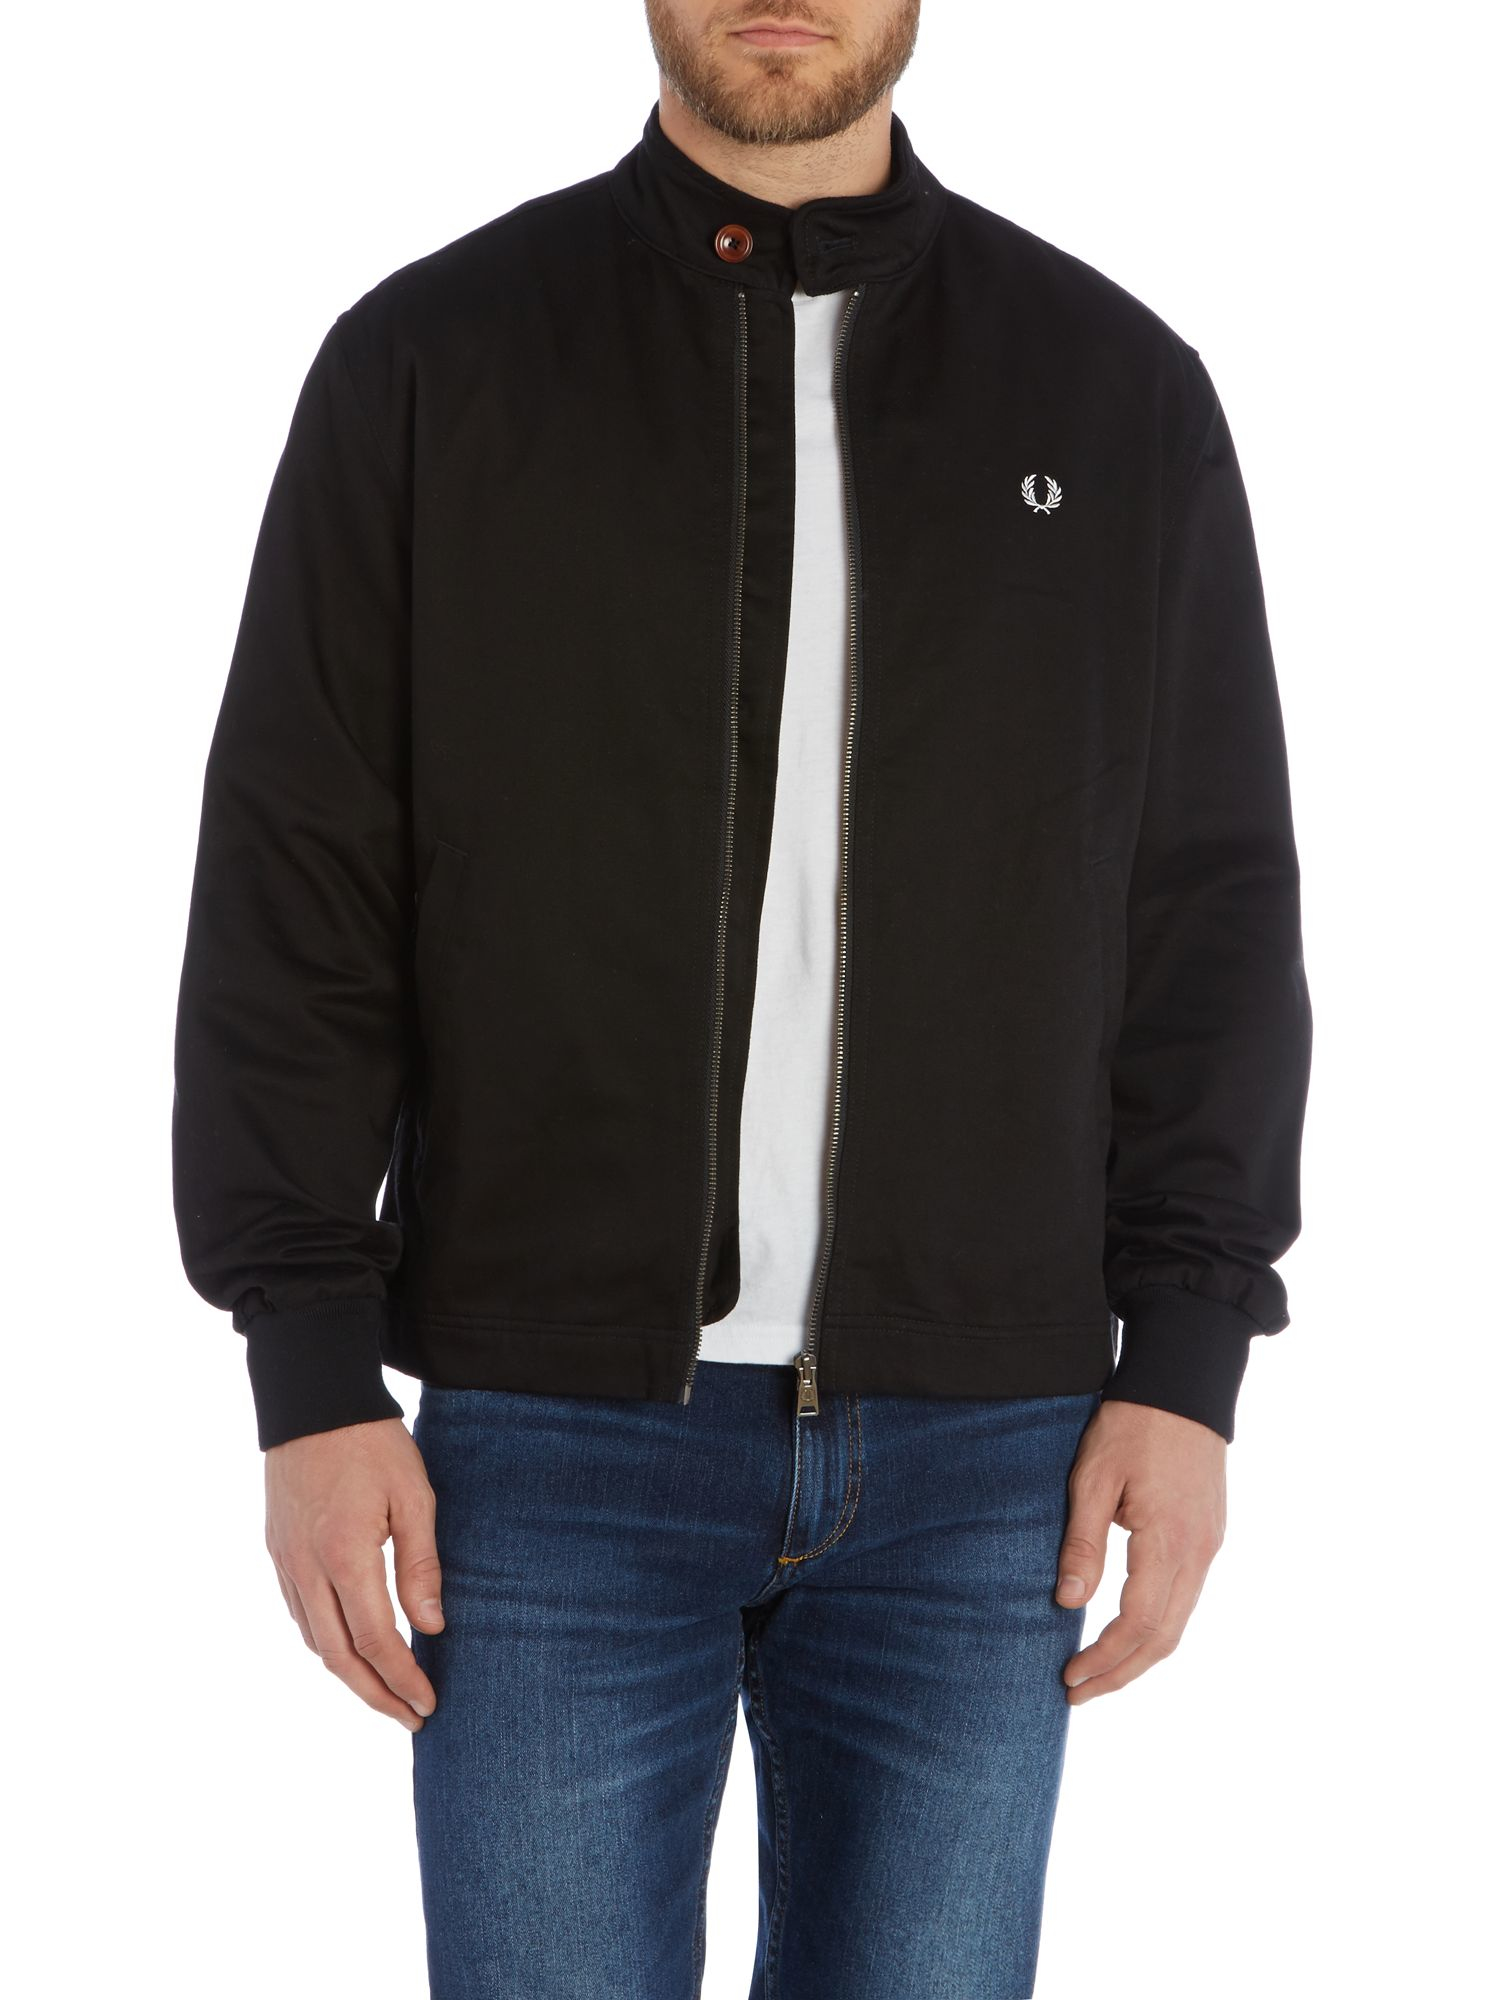 lyst fred perry scooter full zip jacket in black for men. Black Bedroom Furniture Sets. Home Design Ideas